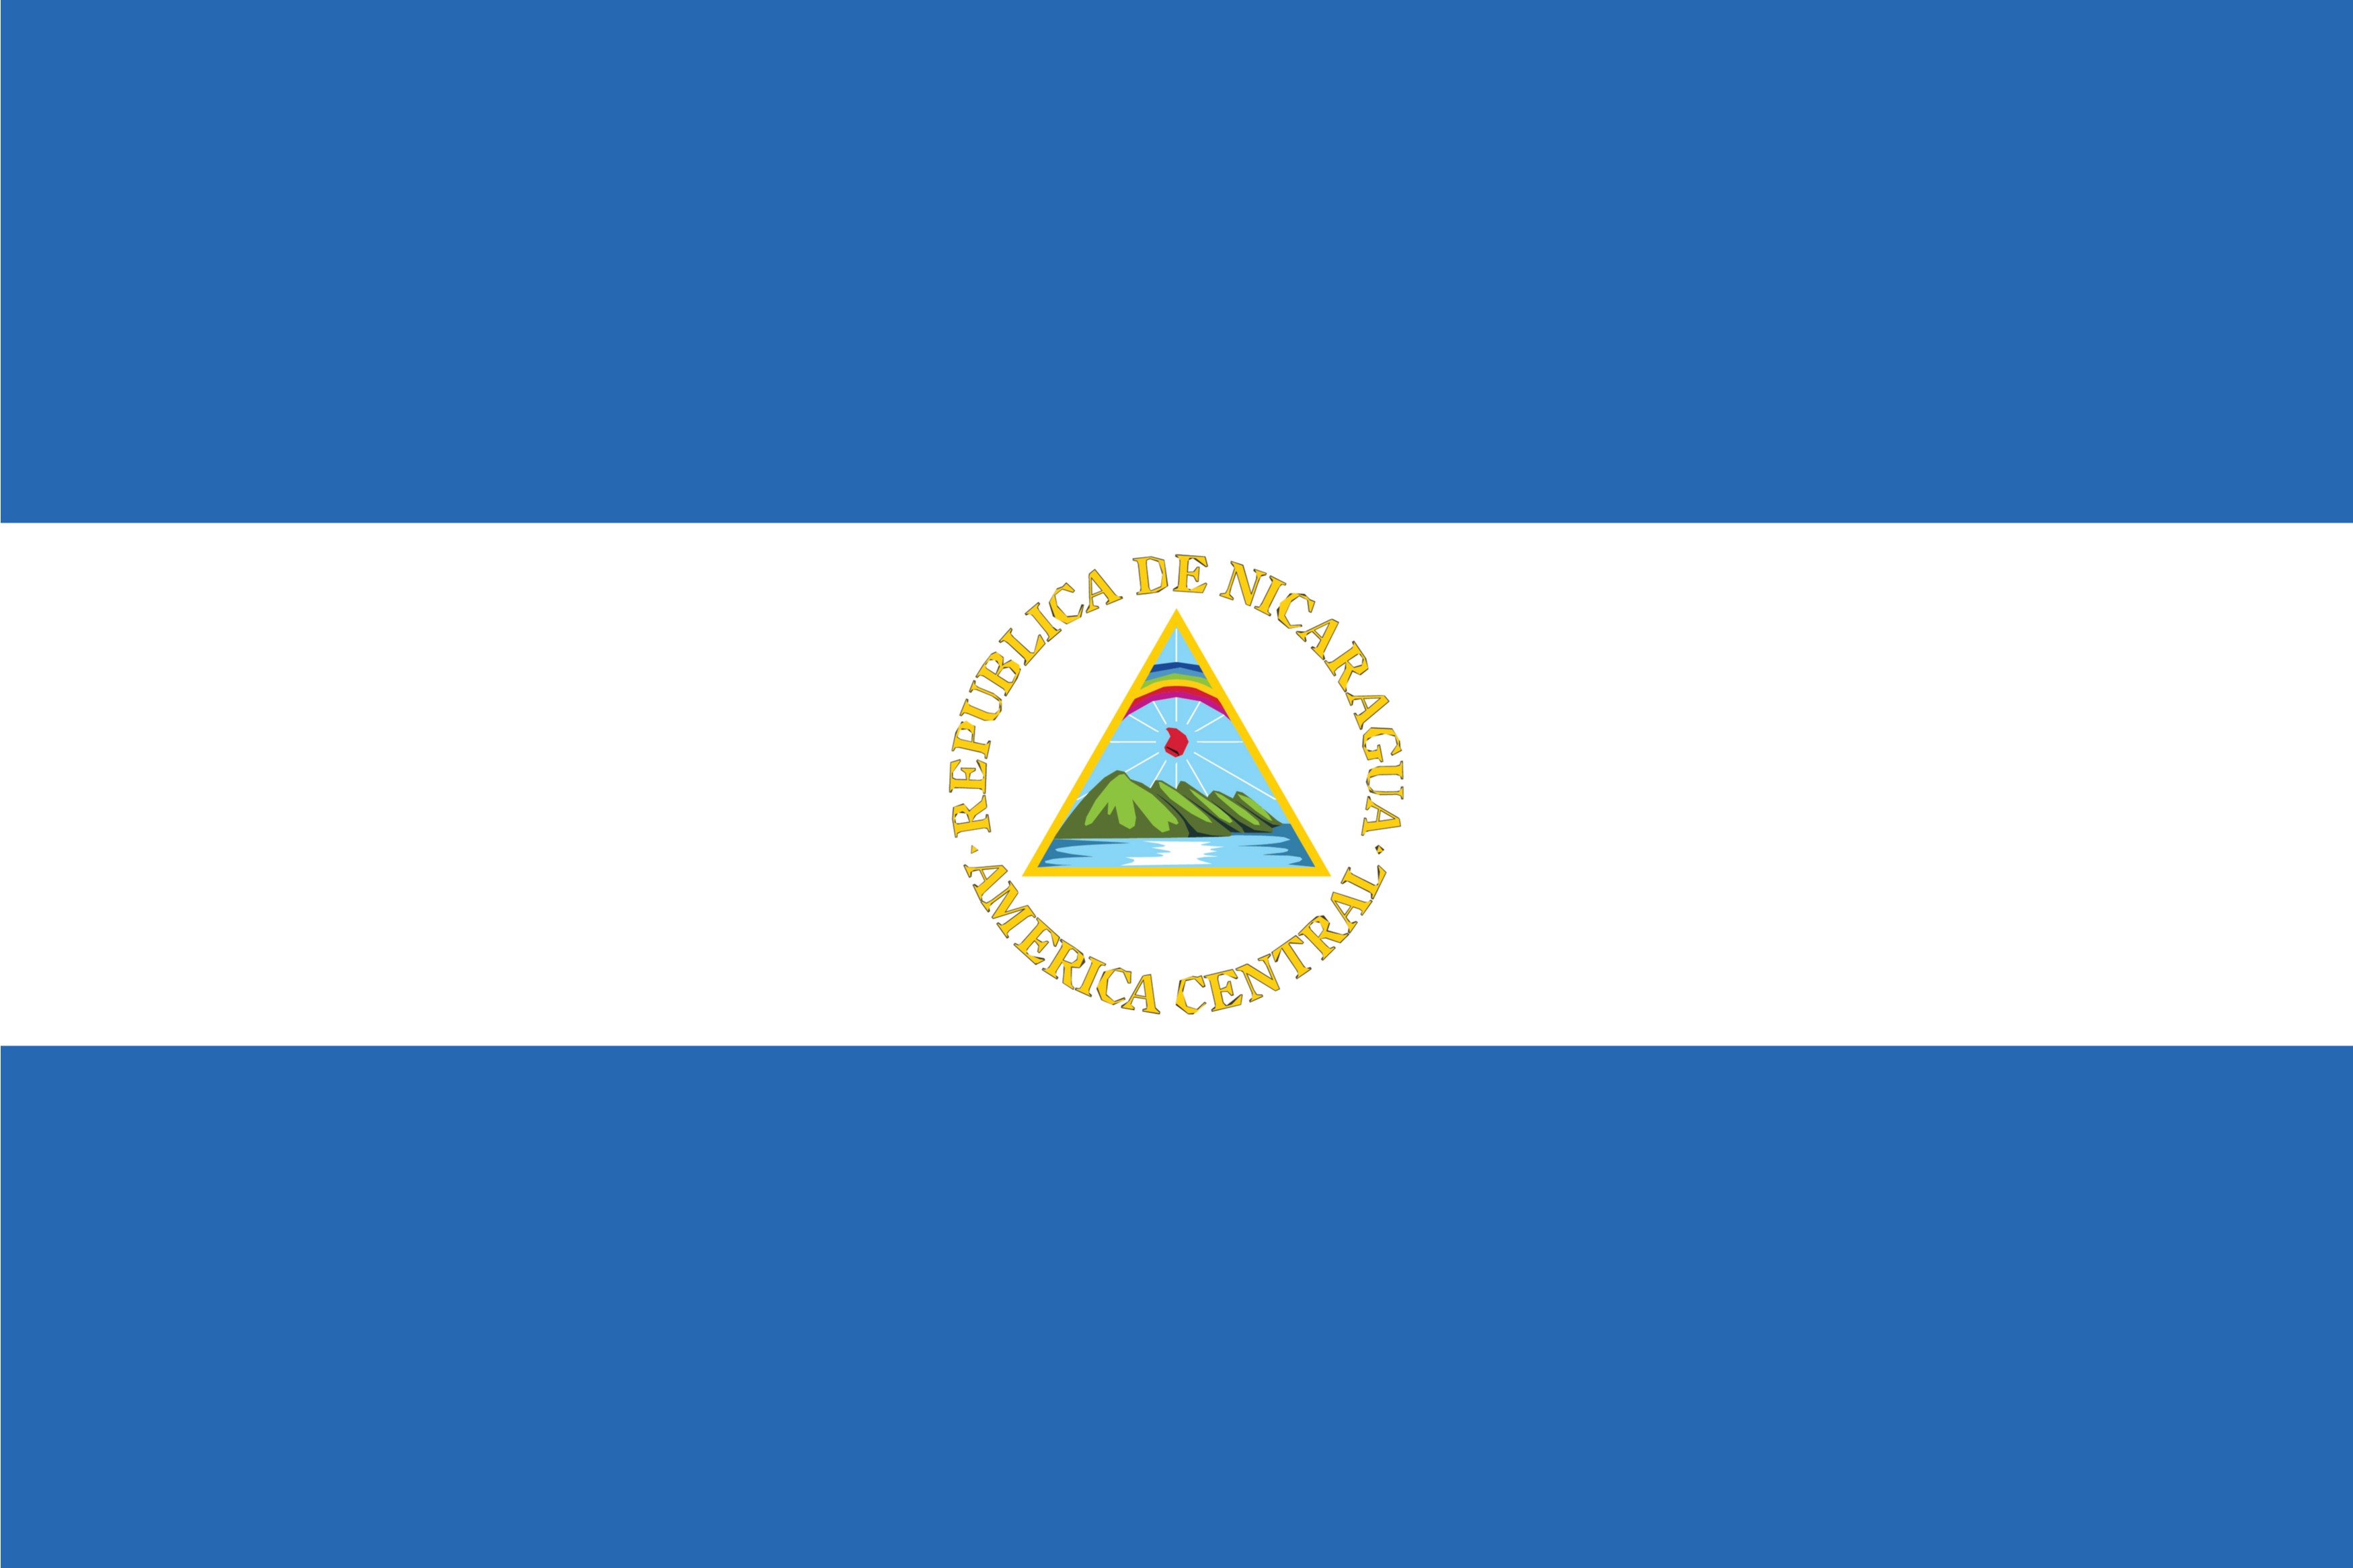 The flag of Nicaragua is a bicolor with three horizontal bands of blue (top), white, and blue with the country's National Coat of Arms centered on white.